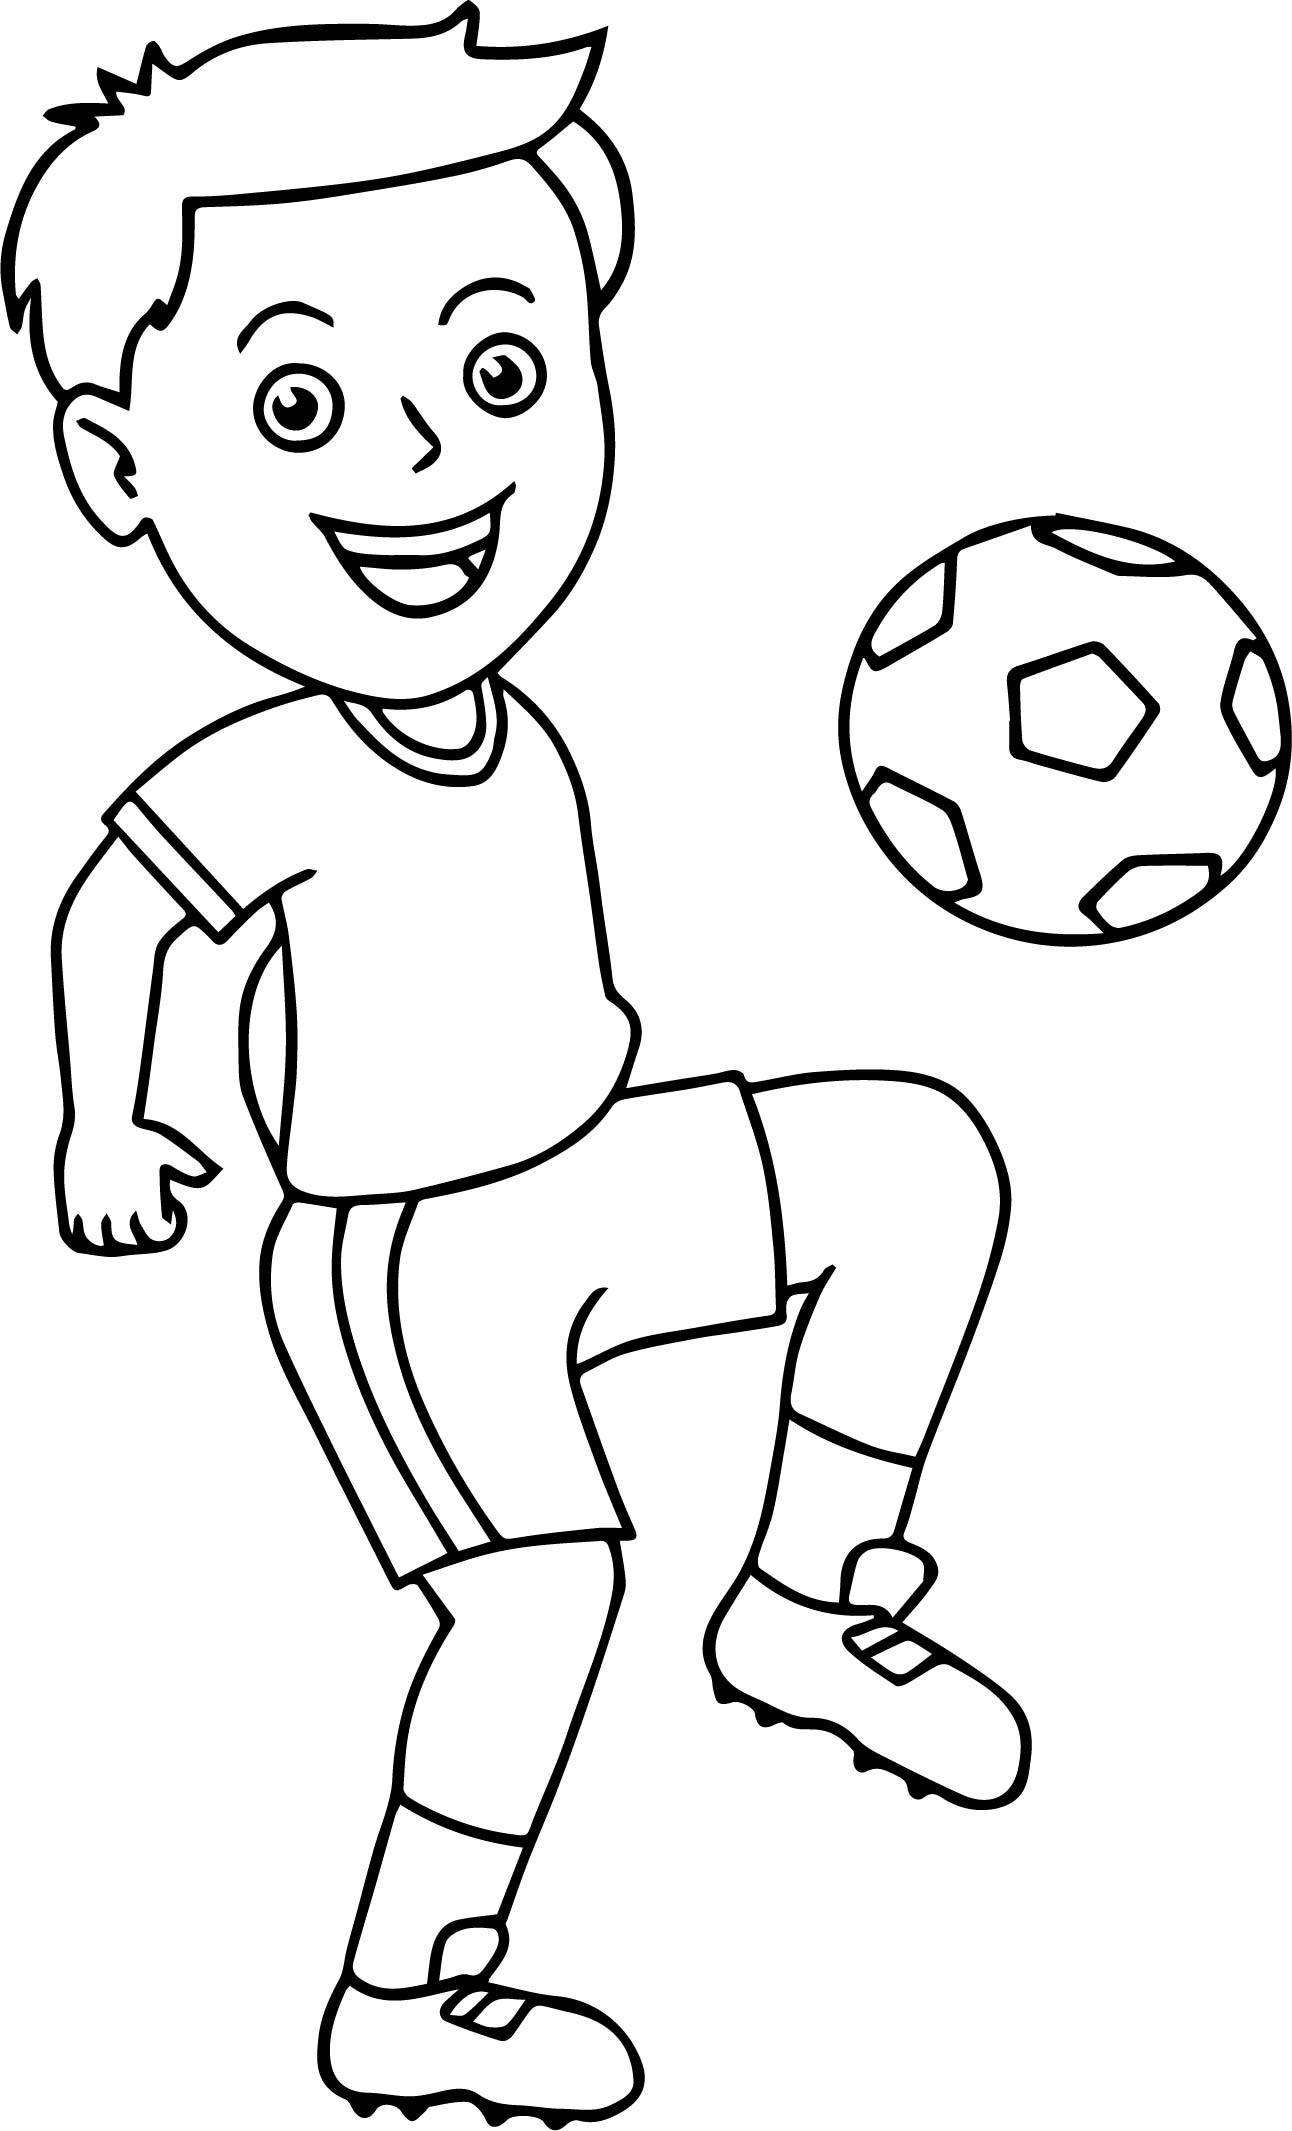 Coloring Pages For Boys Football Players  Soccer Boy Bouncing Soccer Ball His Knee Playing